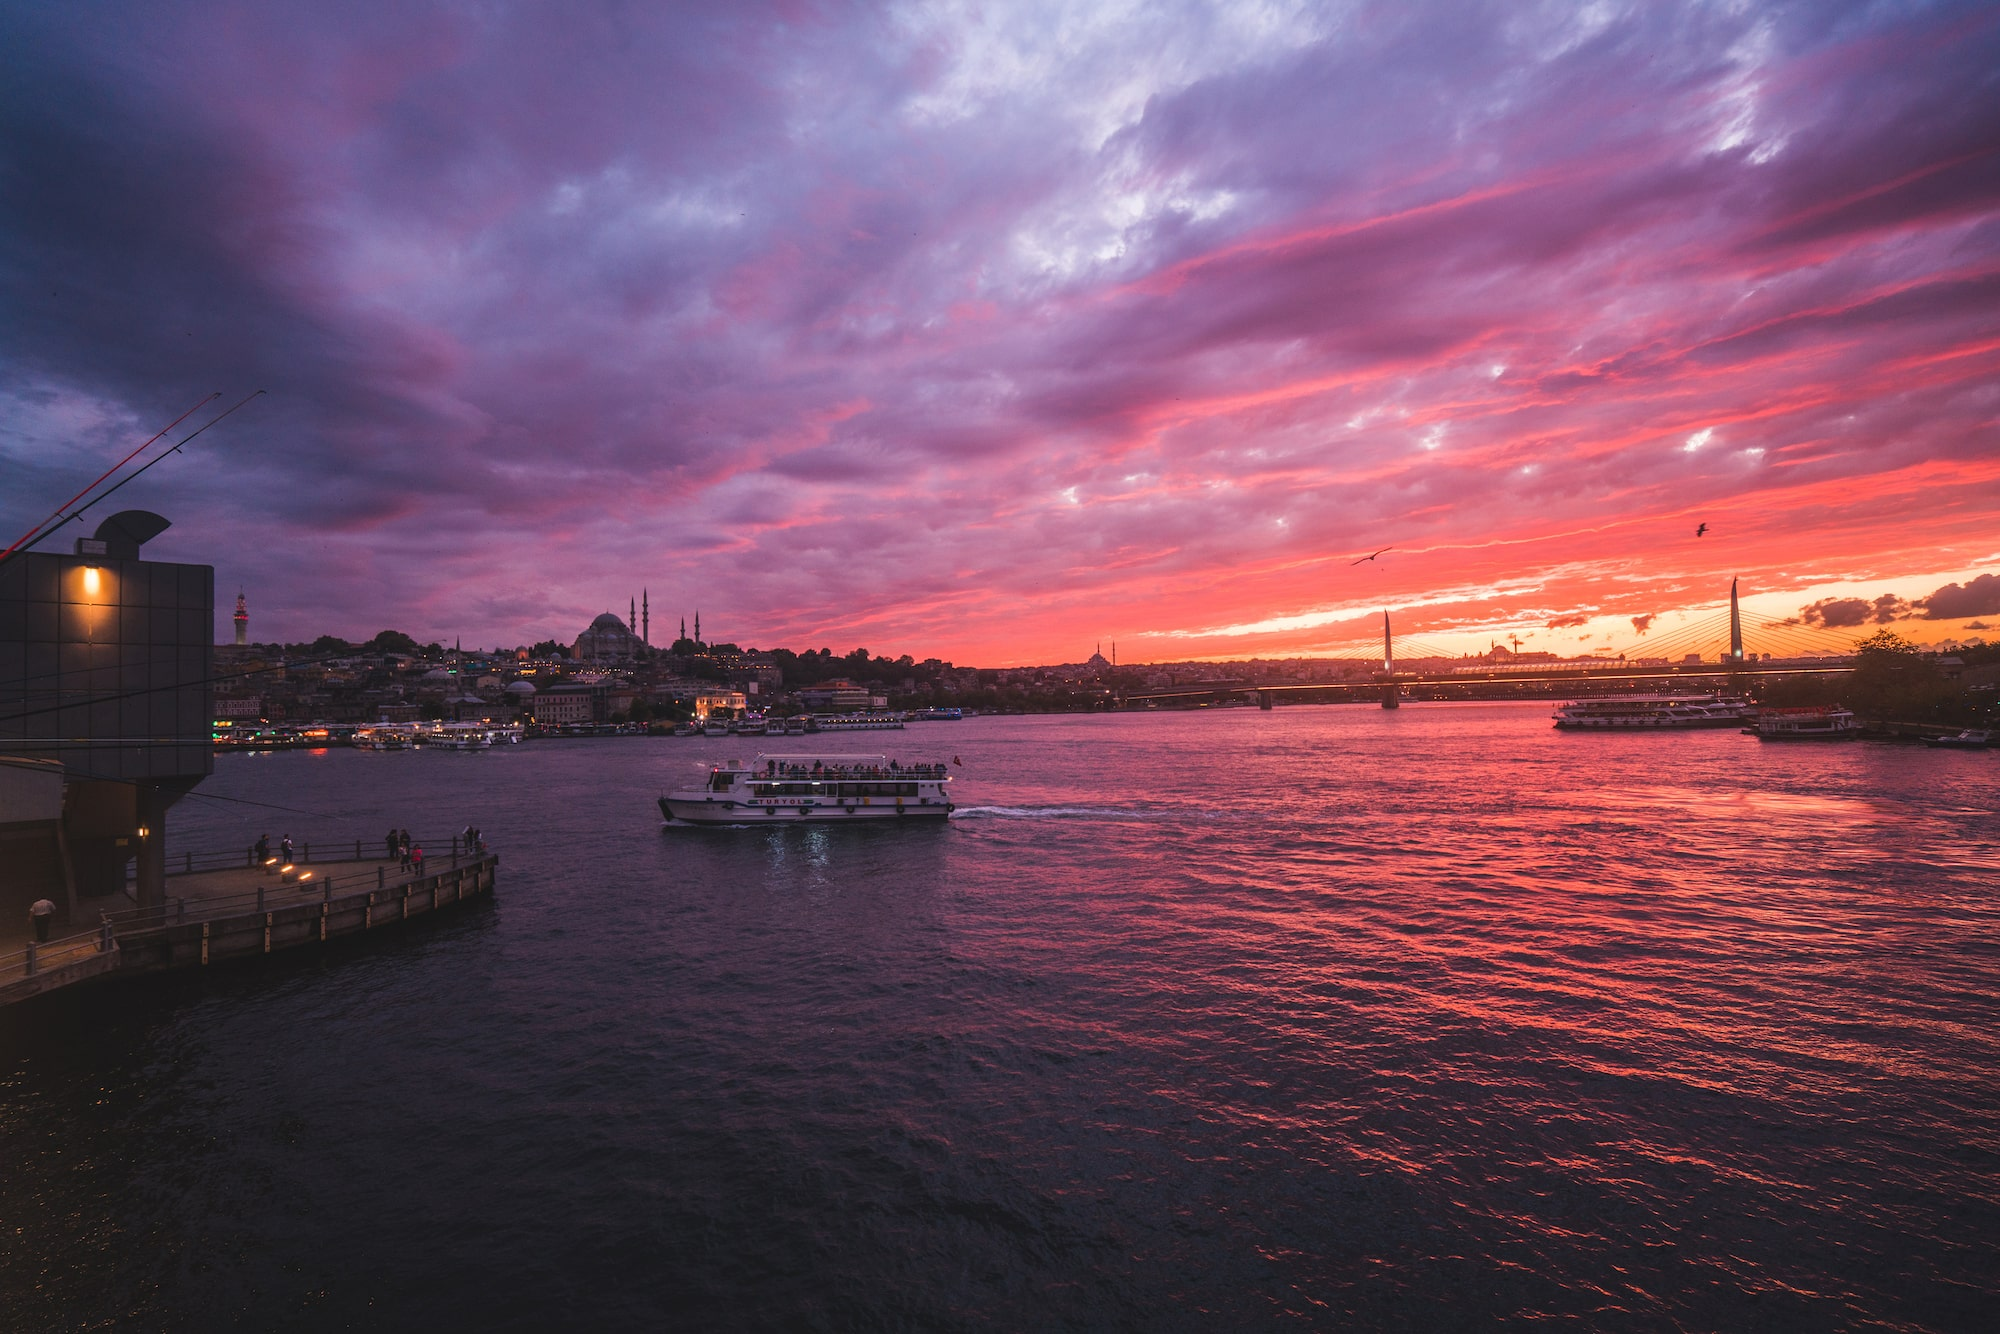 İlkin Karacan Karakus sony A7RM2 sunset over the bosphorous in istanbul